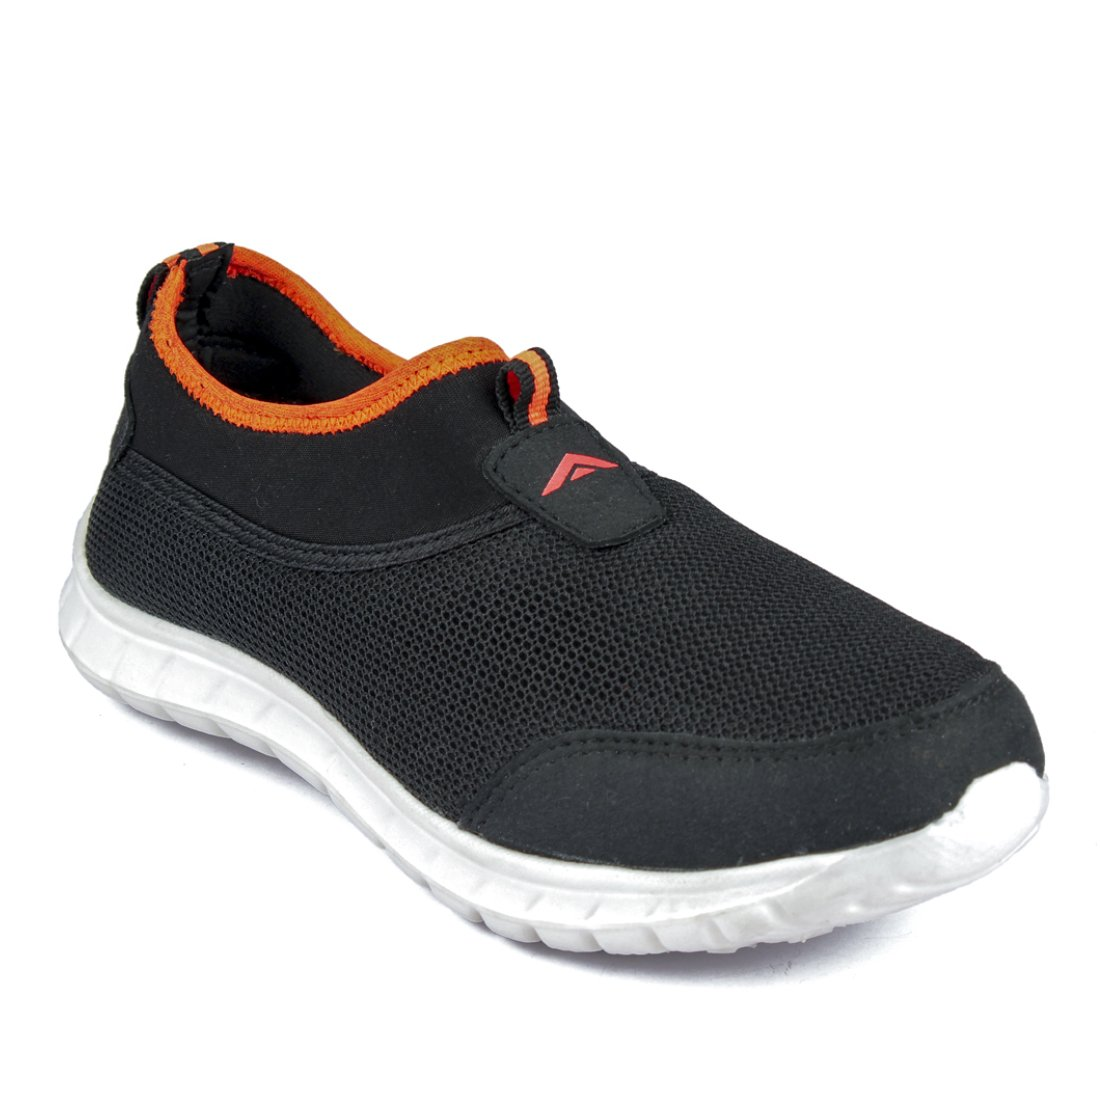 ASIAN Riya-51 Walking Shoes,Sports Shoes Casual Shoes,Running Shoes,Gym Shoes,Loafers,Sneakers for Women